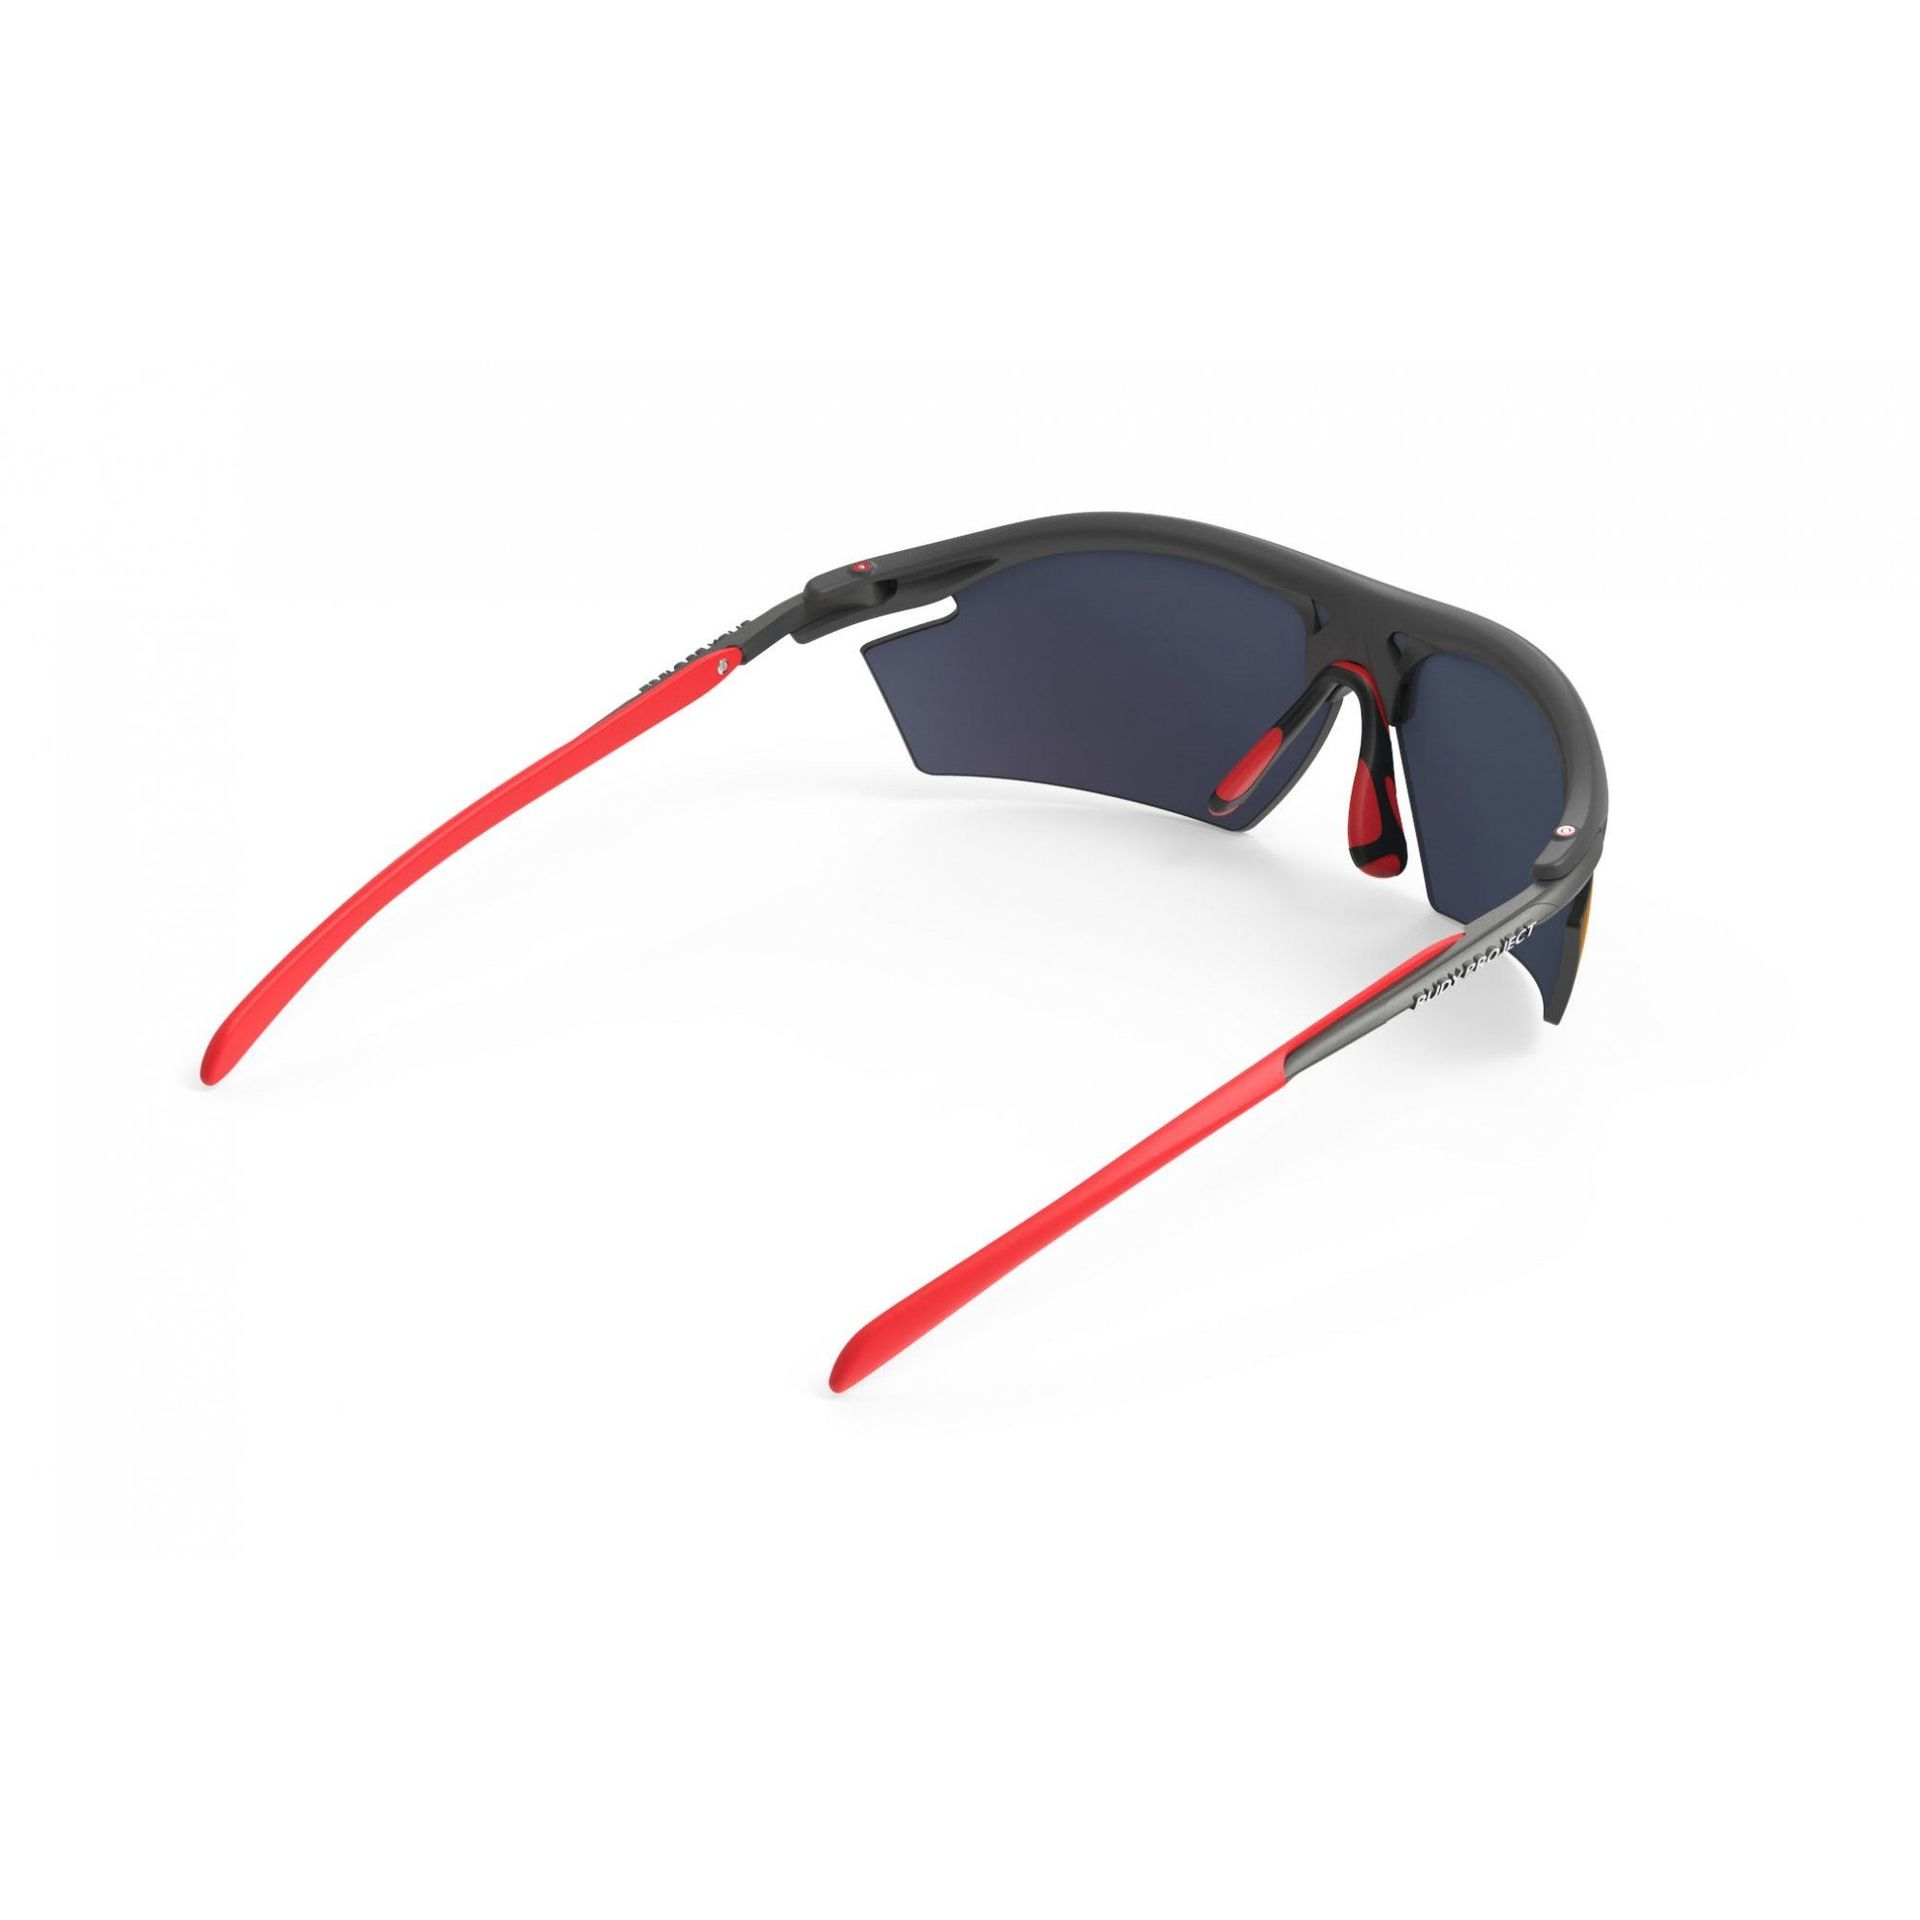 OKULARY RUDY PROJECT RYDON GRAPHITE|RED + ML RED SP533898 5